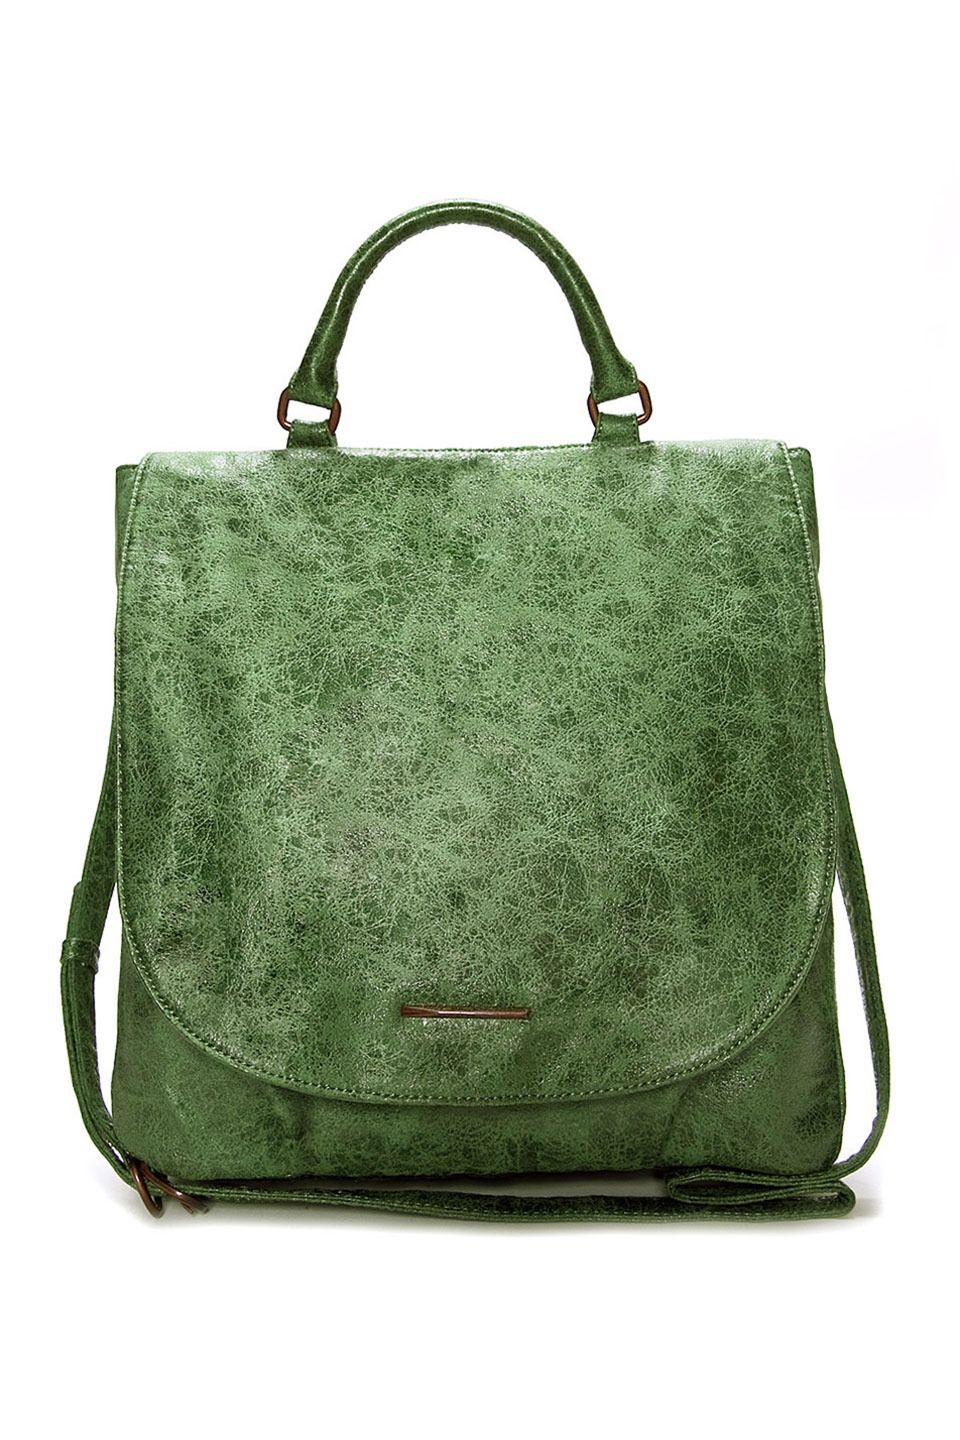 "Matt & Nat Tompkin Tote in Grass - 138$ Matt & Nat's Tompkin tote is the perfect professional match to carry your essentials • Features top carrying handles • Logo bar on front flap • Exterior zipper pocket in the back • Detachable and adjustable shoulder strap • Interior zippered compartment and slip pocket  Approximate Measurements: 13.5""W x 12""H x 3.5""D  Color: Grass  Composition: 100% PVC"